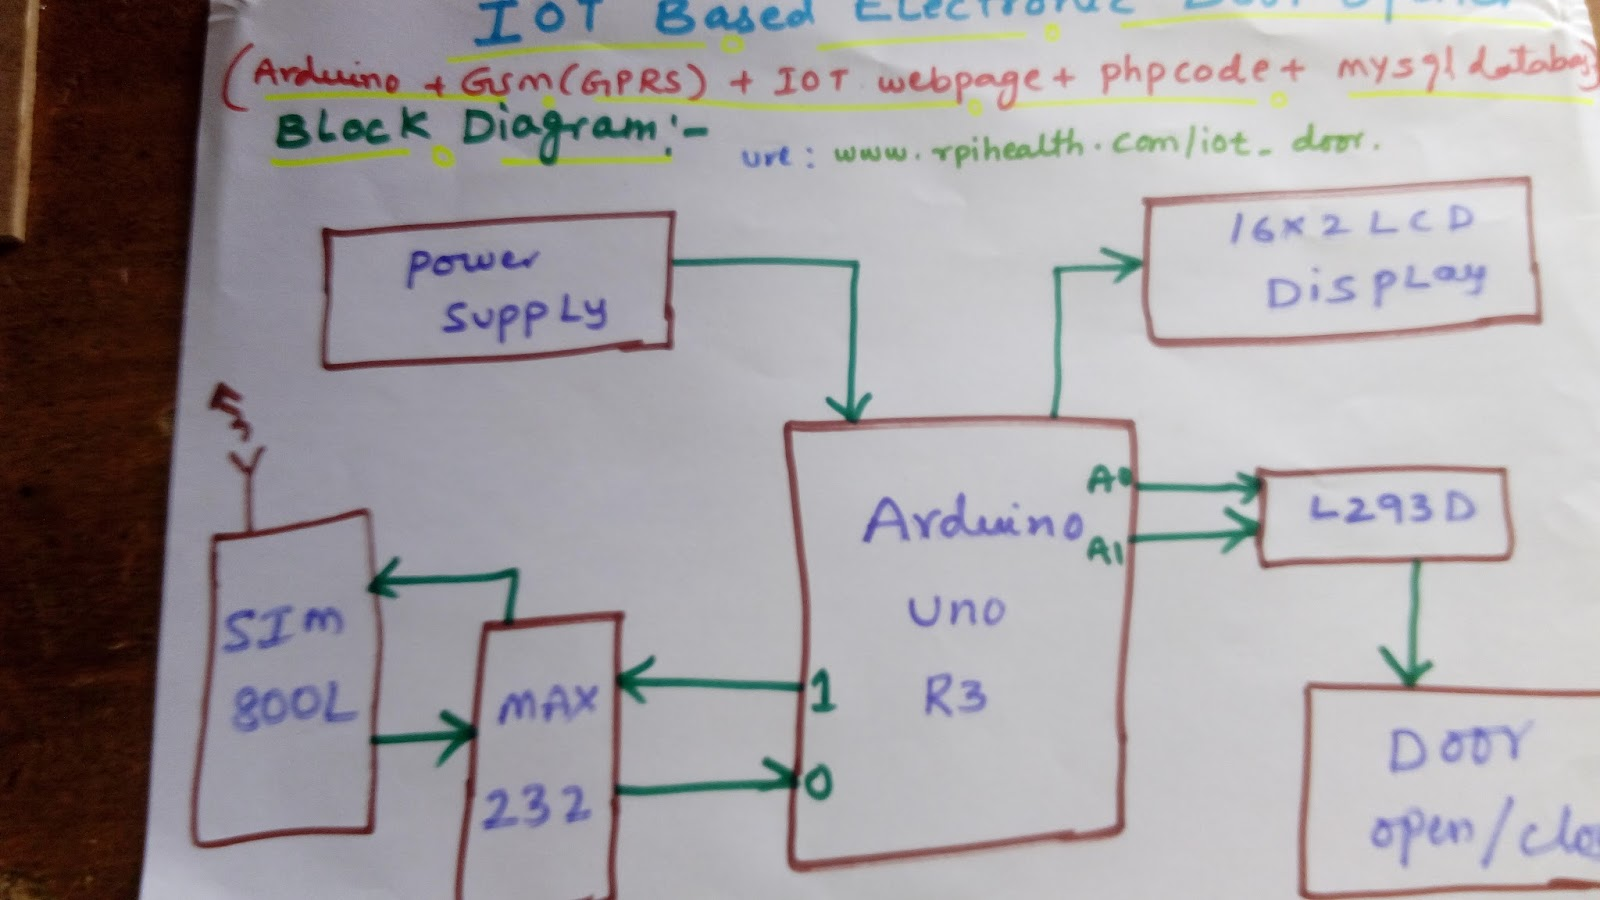 Svsembedded Projects 91 9491535690 7842358459 May 2017 Password Based Door Locking System Circuit Diagram Using 8051 32 Movement Sensed Automatic Opening Pdf